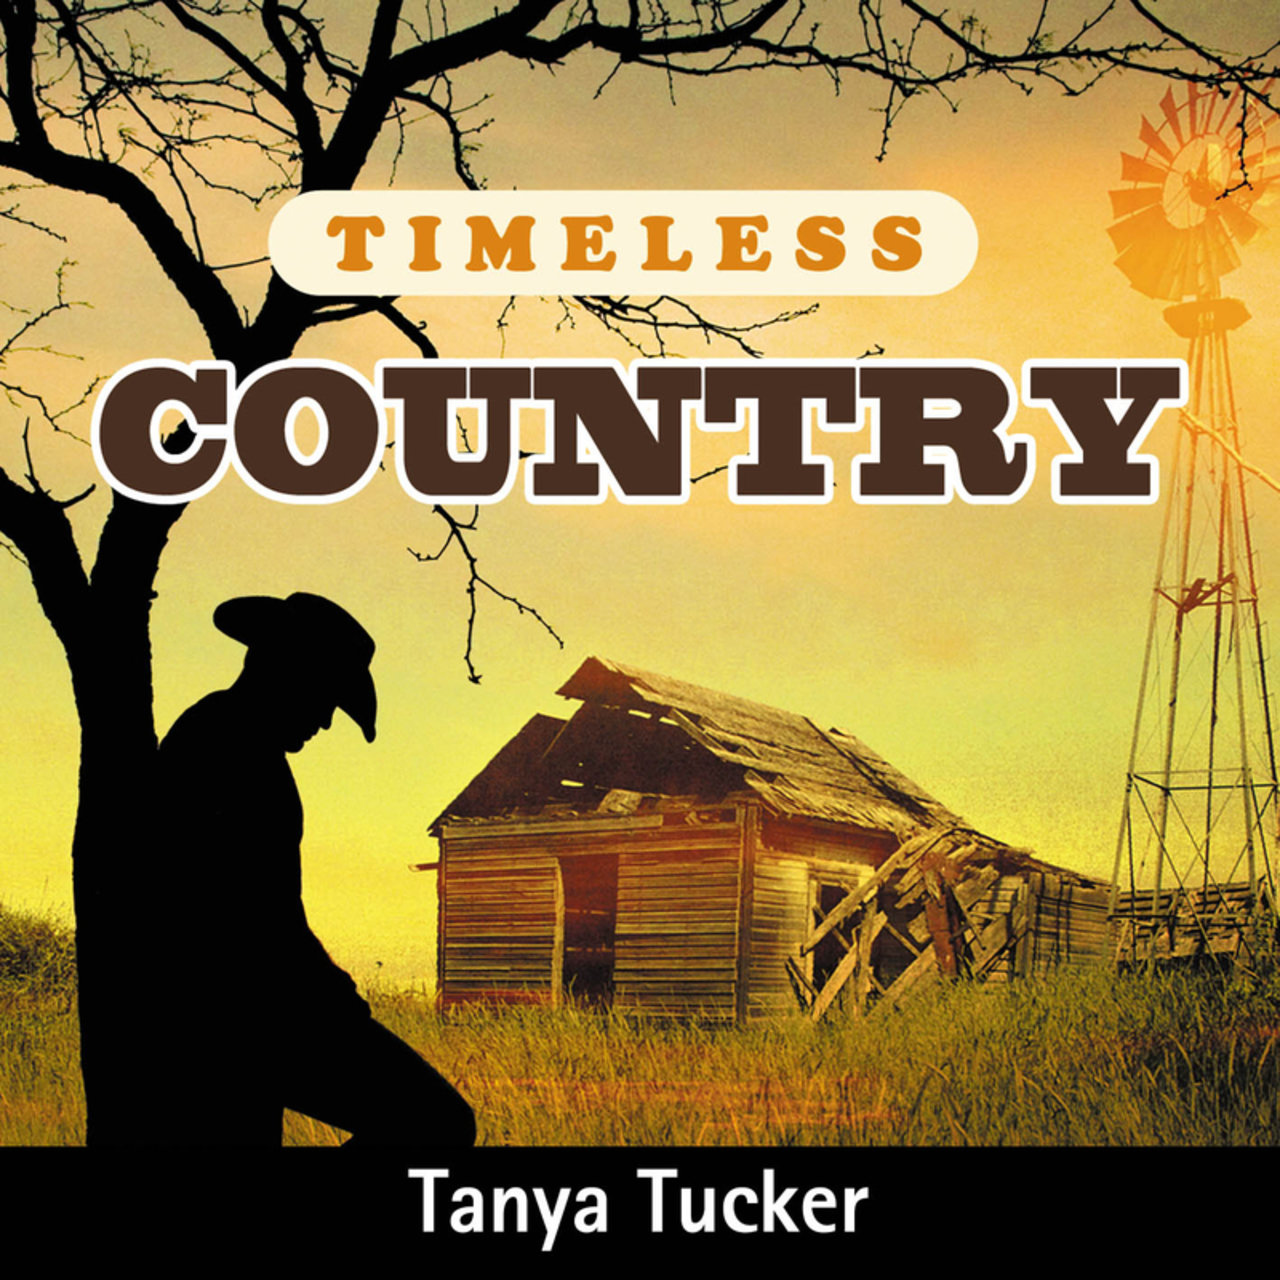 Timeless Country: Tanya Tucker